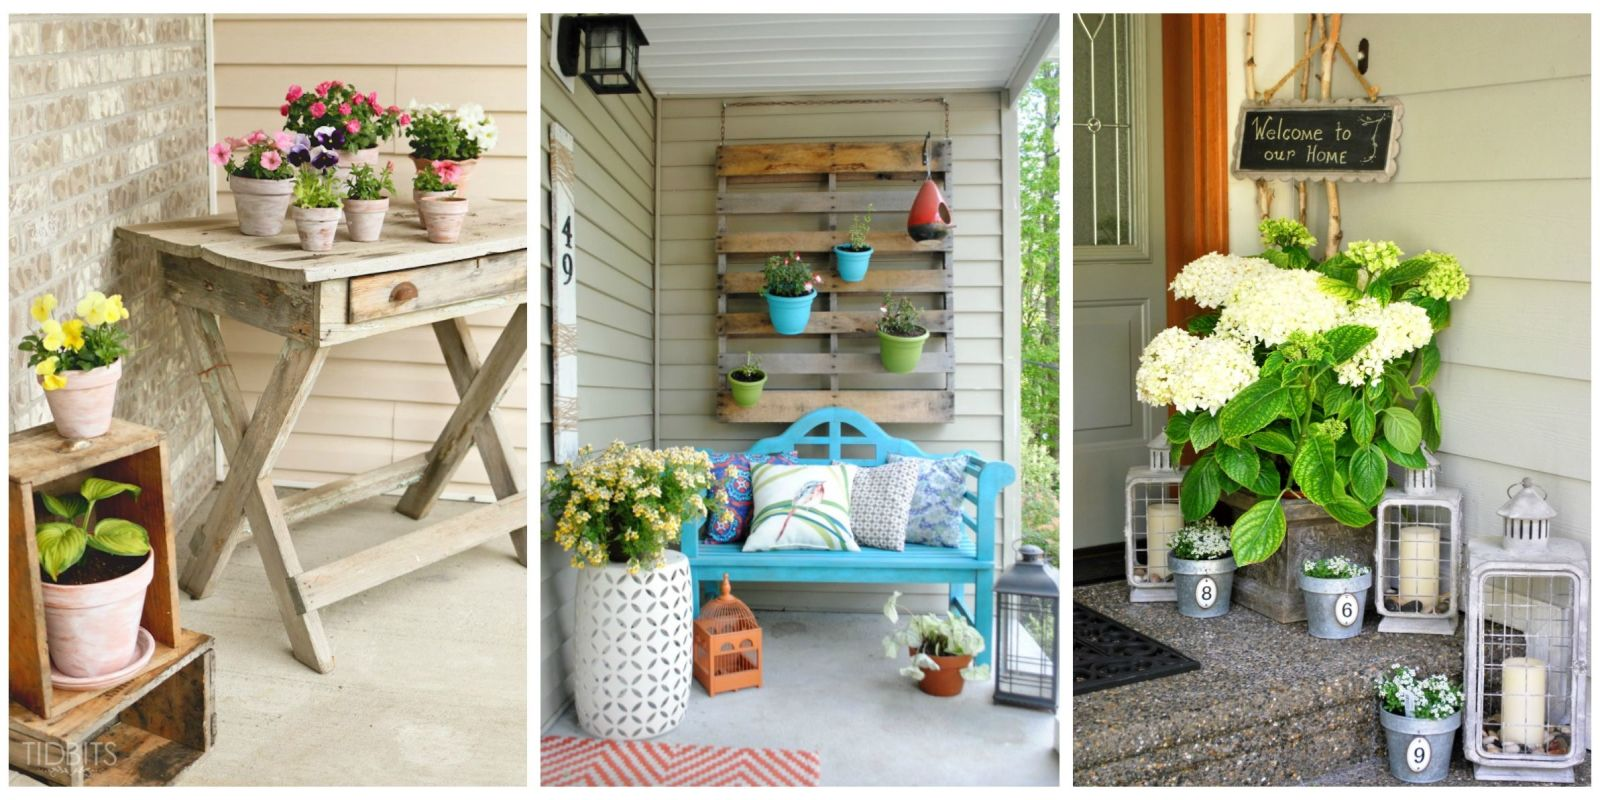 Diy porch d cor diy outdoor d cor for Homemade garden decor crafts